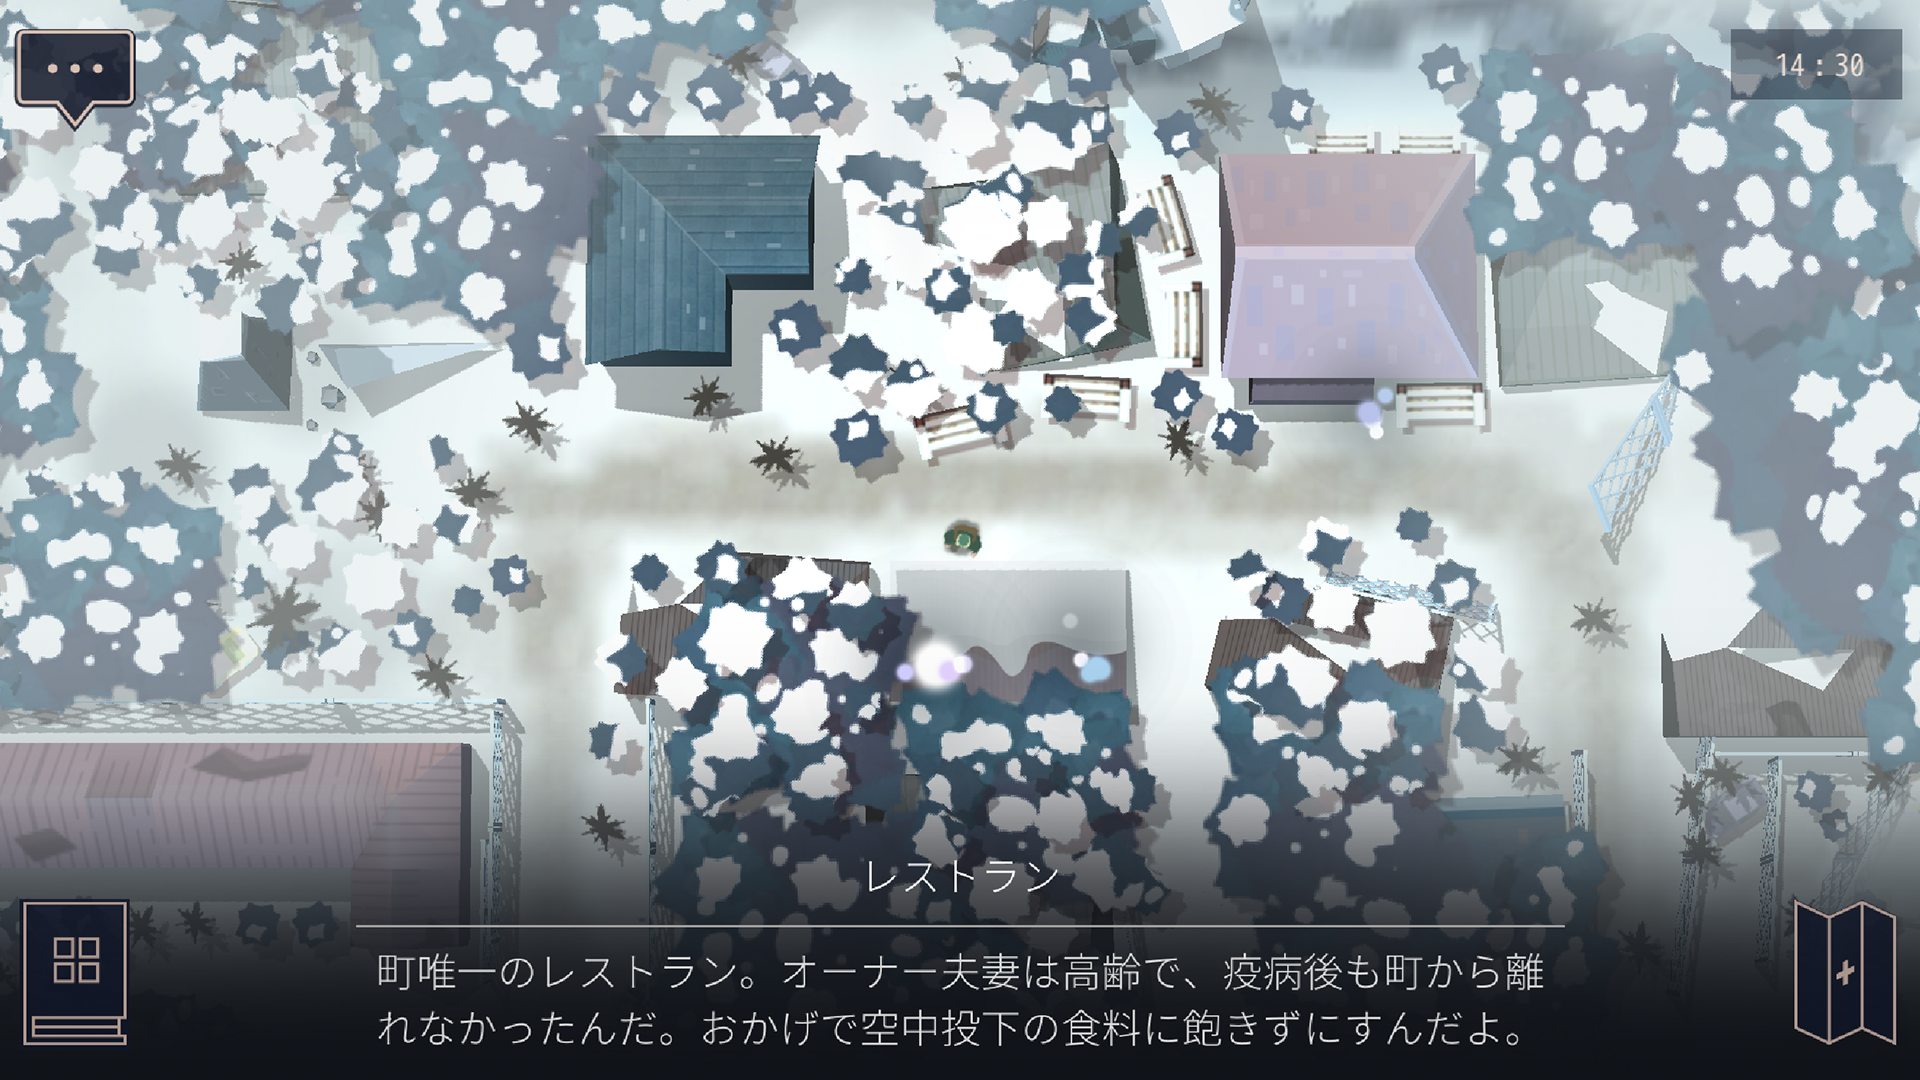 Steam screenshot JP6.png